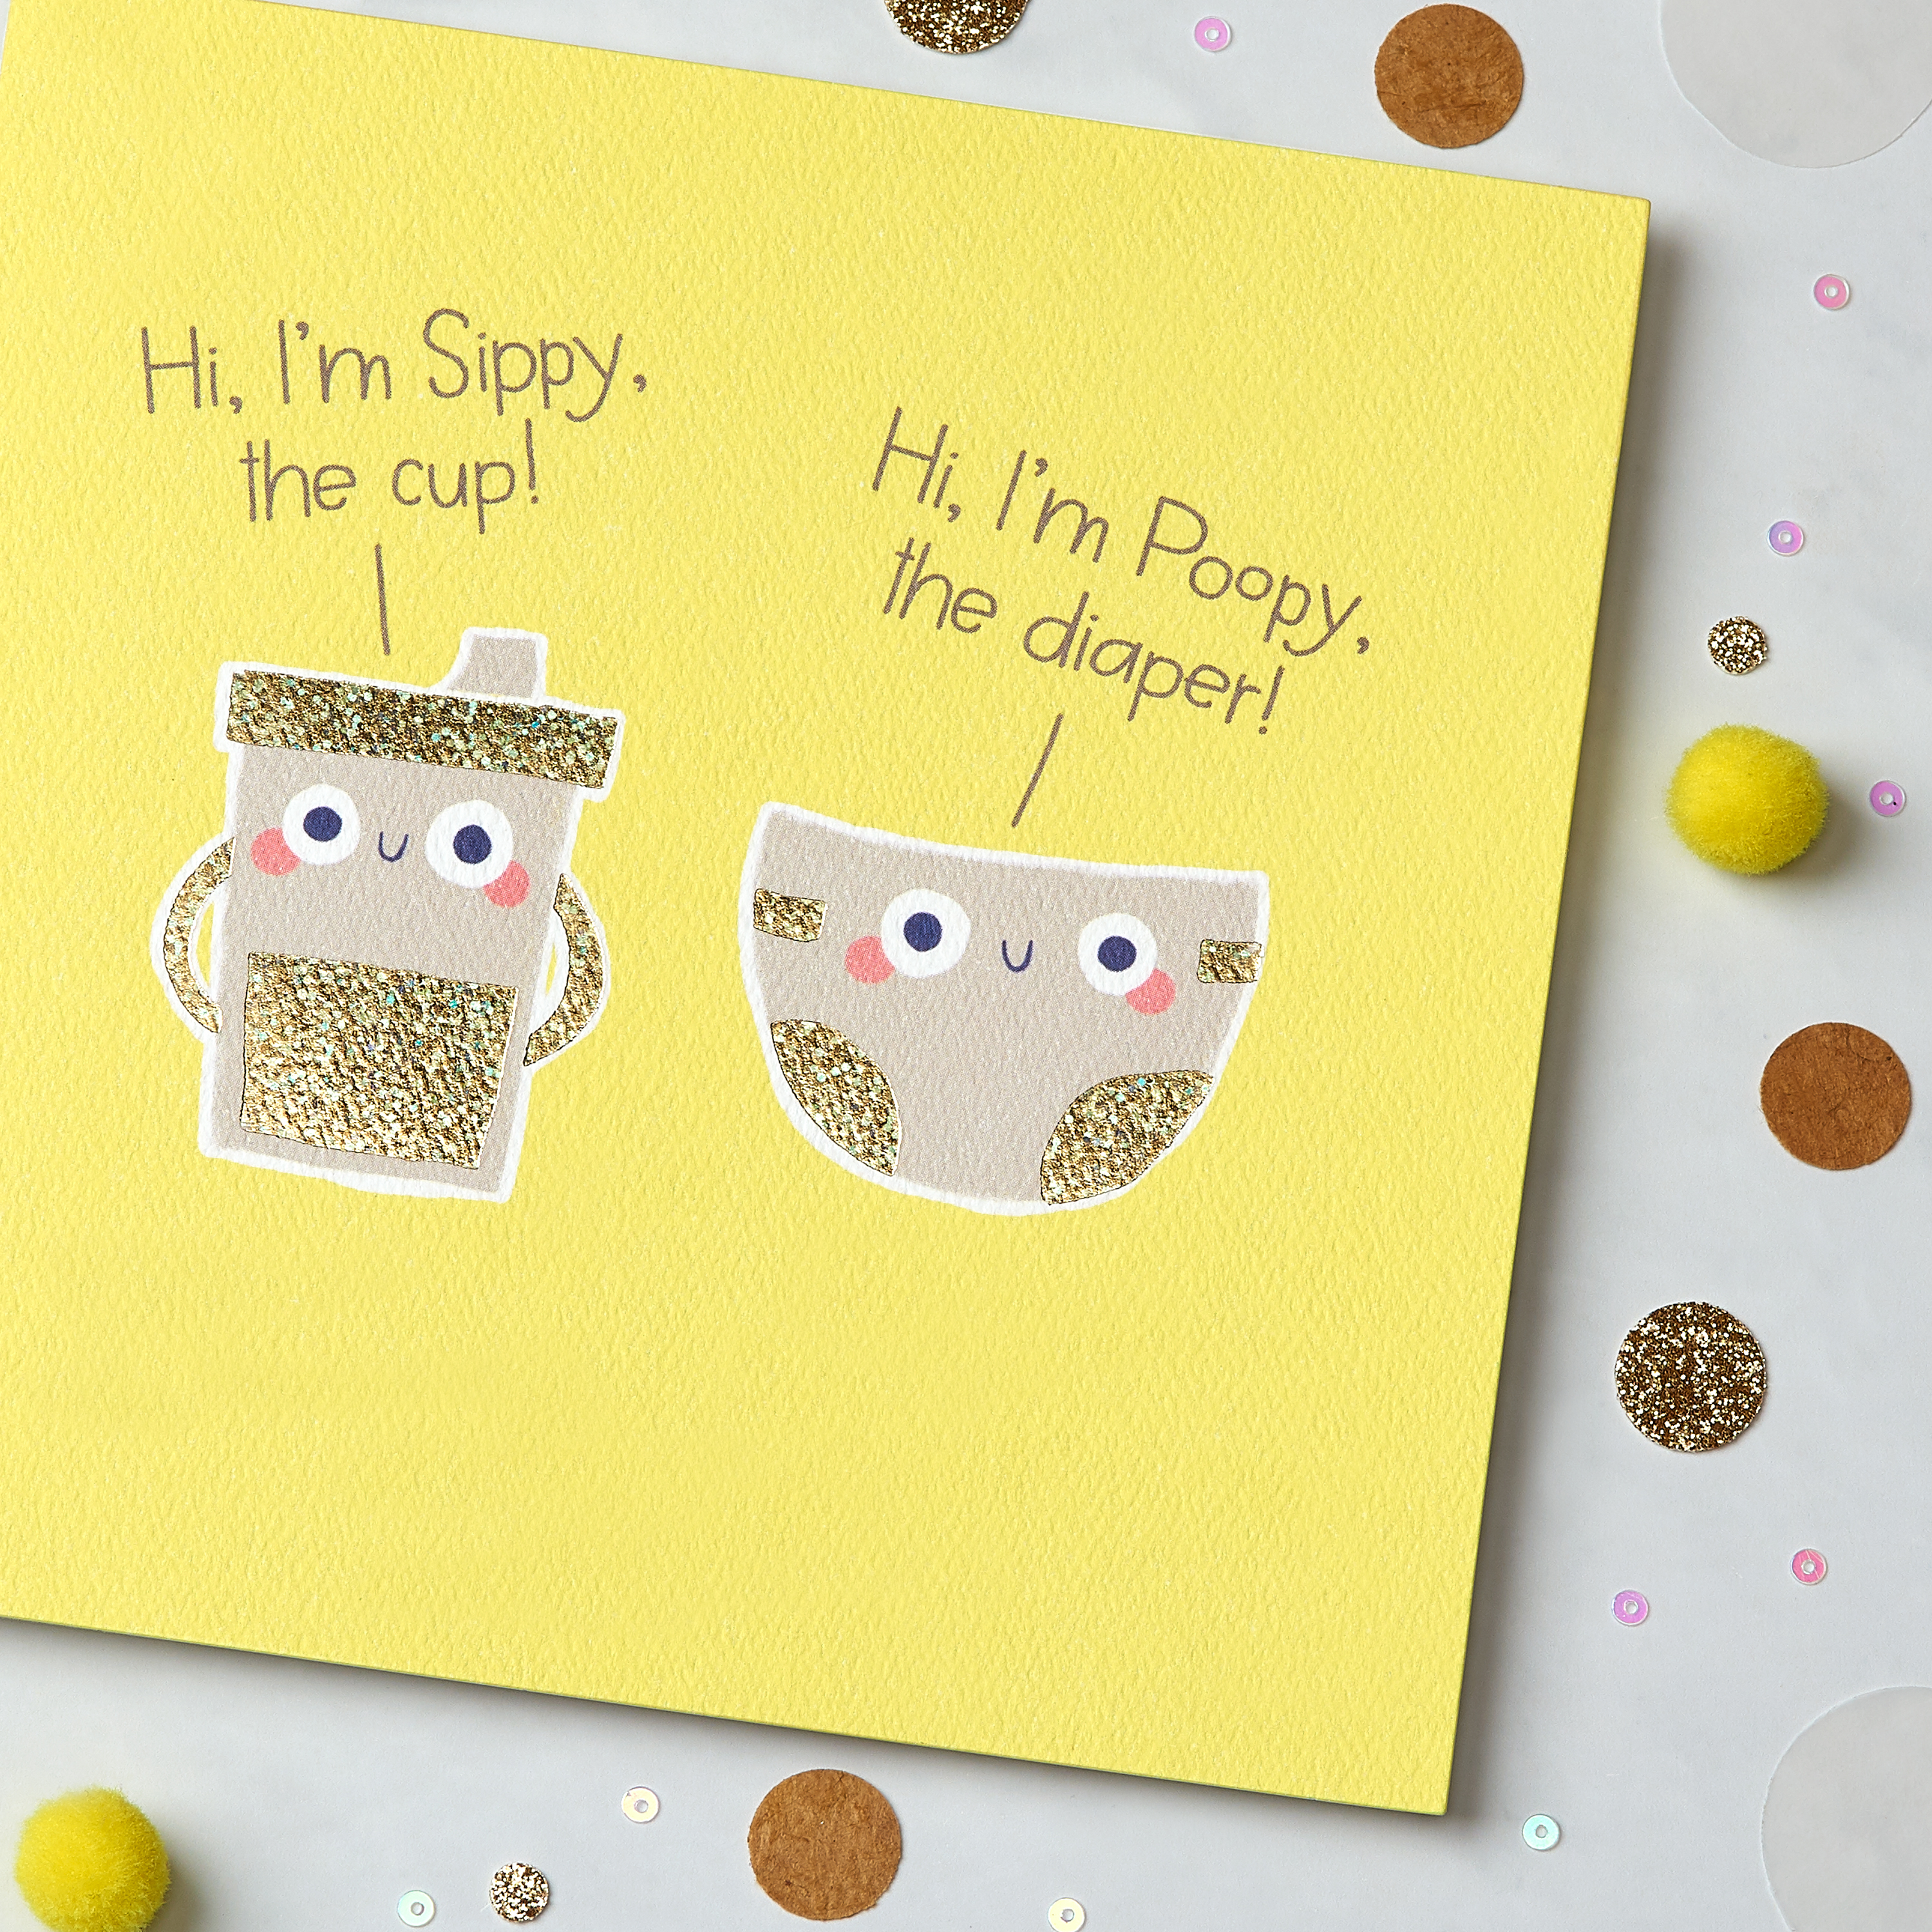 Sippy and Poopy New Baby Congratulations Greeting Card image